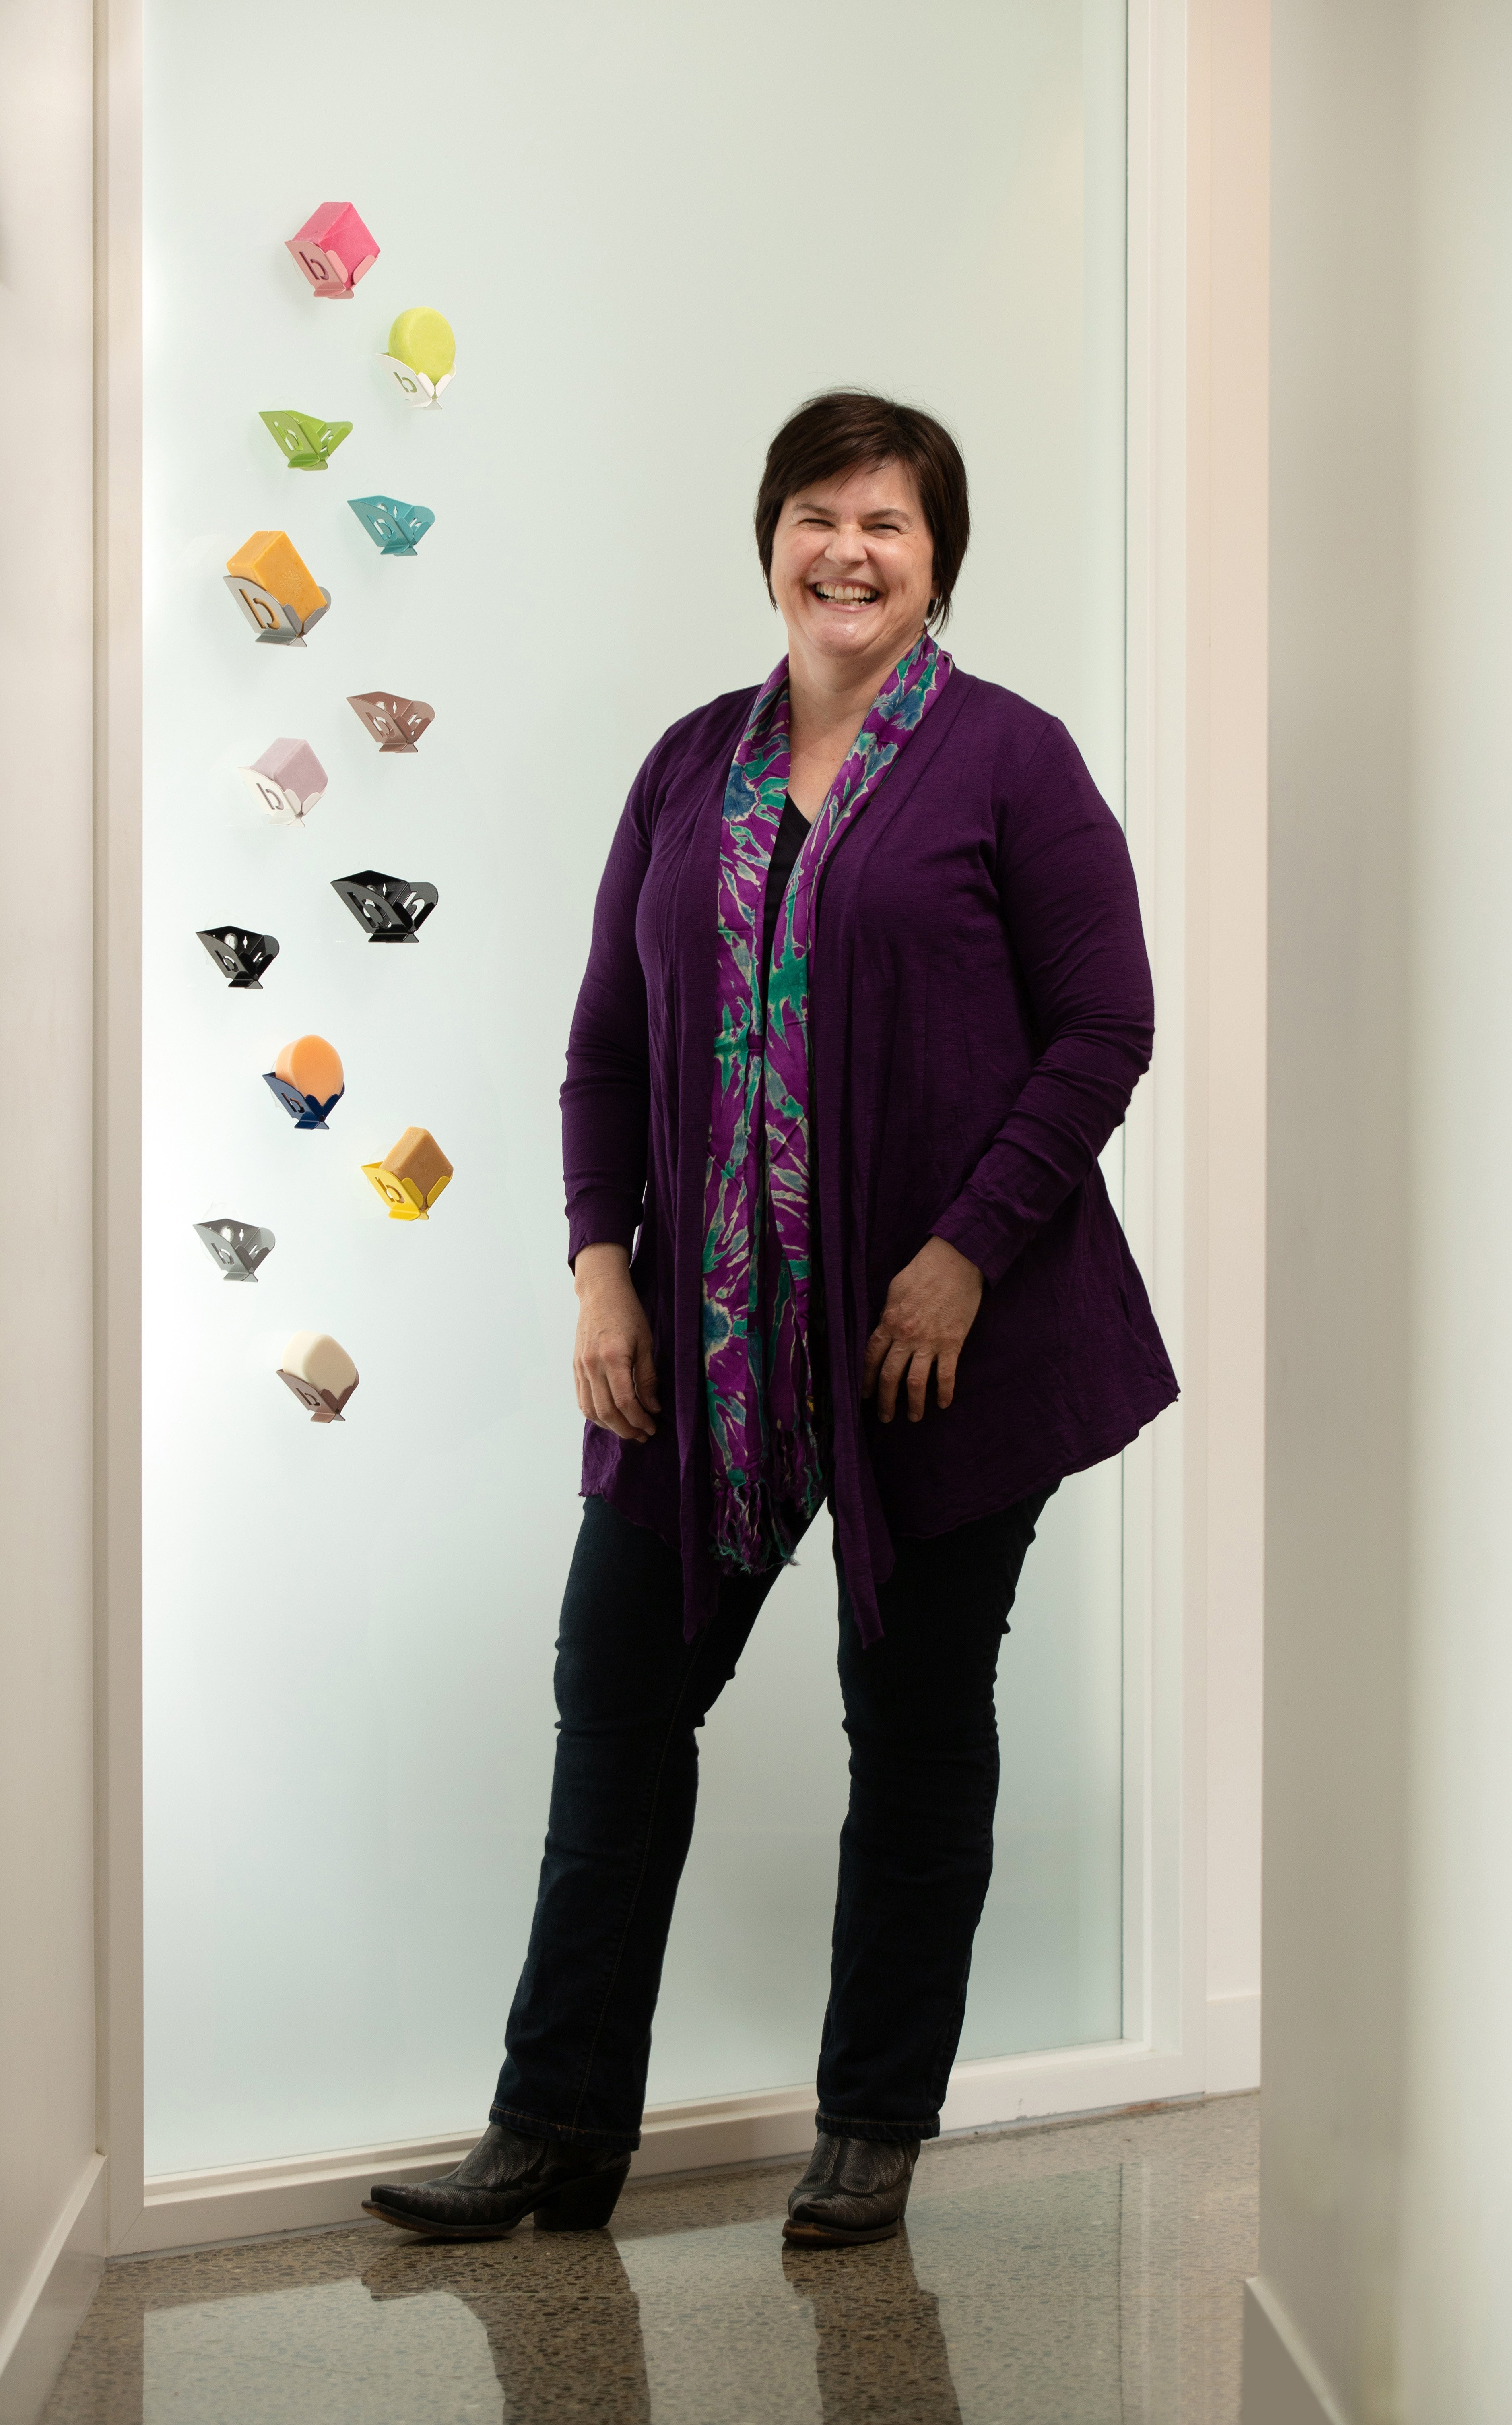 Former Dunedin woman Clare Wilson and the soap block holders she has designed. PHOTO: TIM CUFF